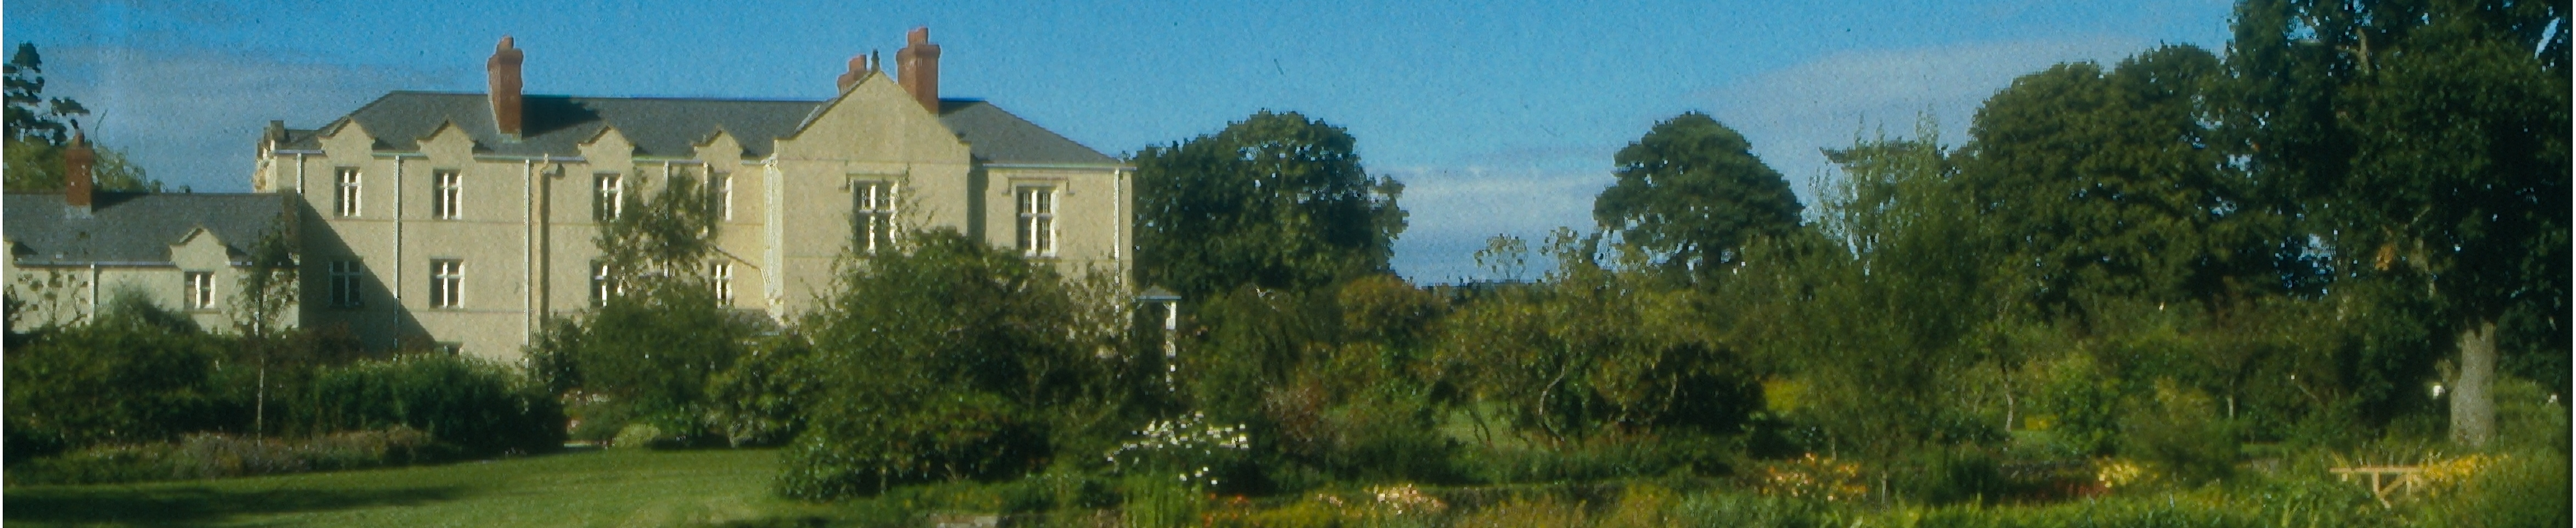 The mansion at Llanllyr